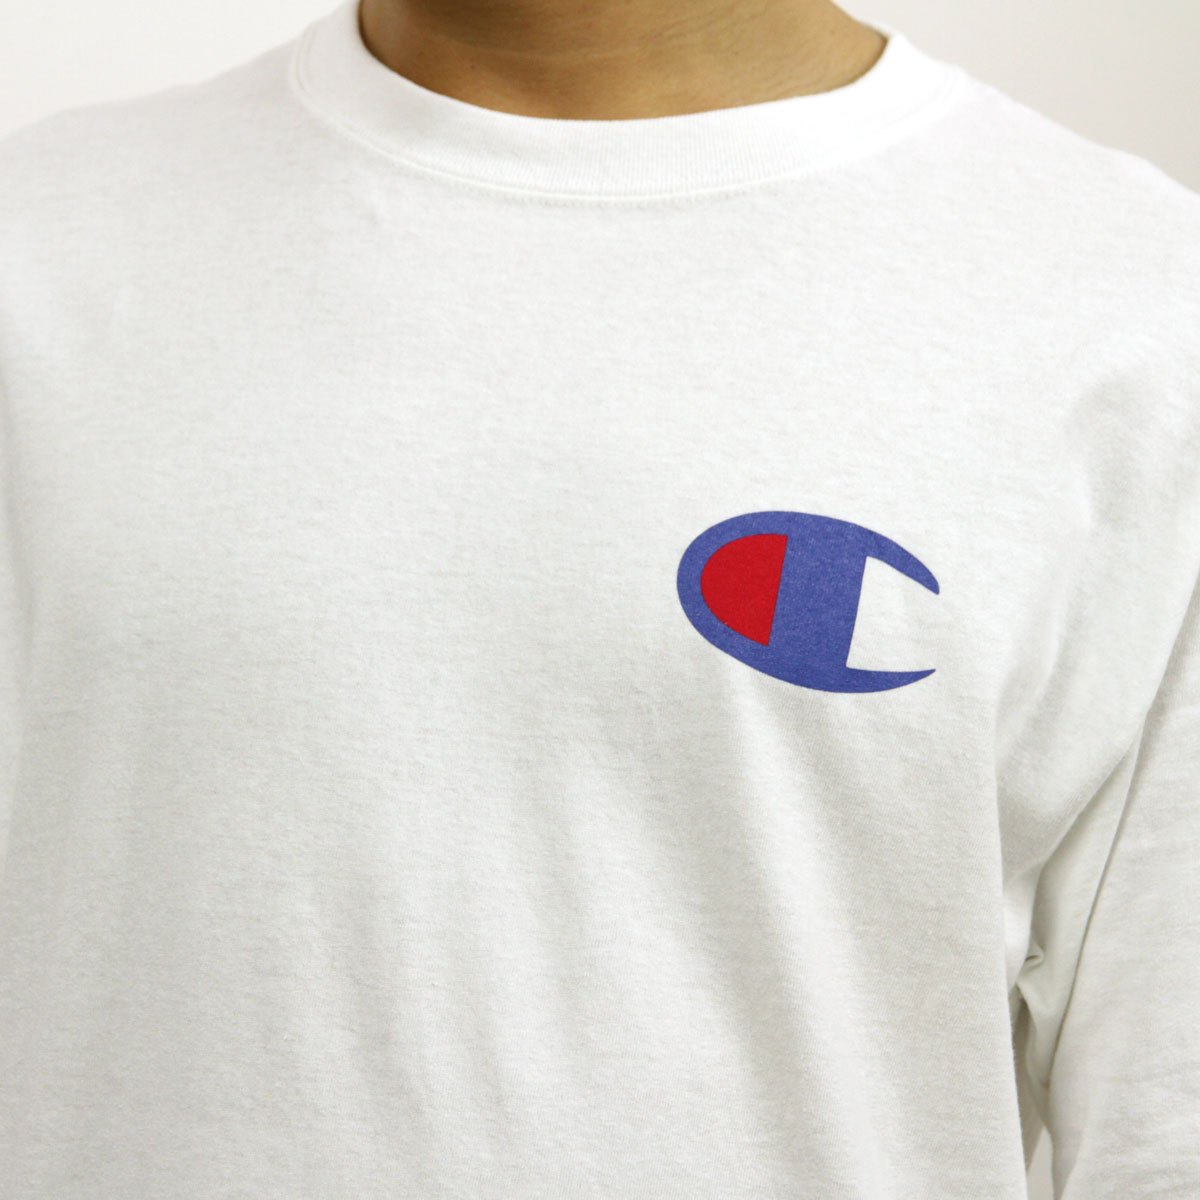 チャンピオン CHAMPION 正規品 メンズ 長袖Tシャツ L/S TEE T2229P Cotton Long Sleeve Tee 045-WHITE #549506 PATRIOTIC C LS